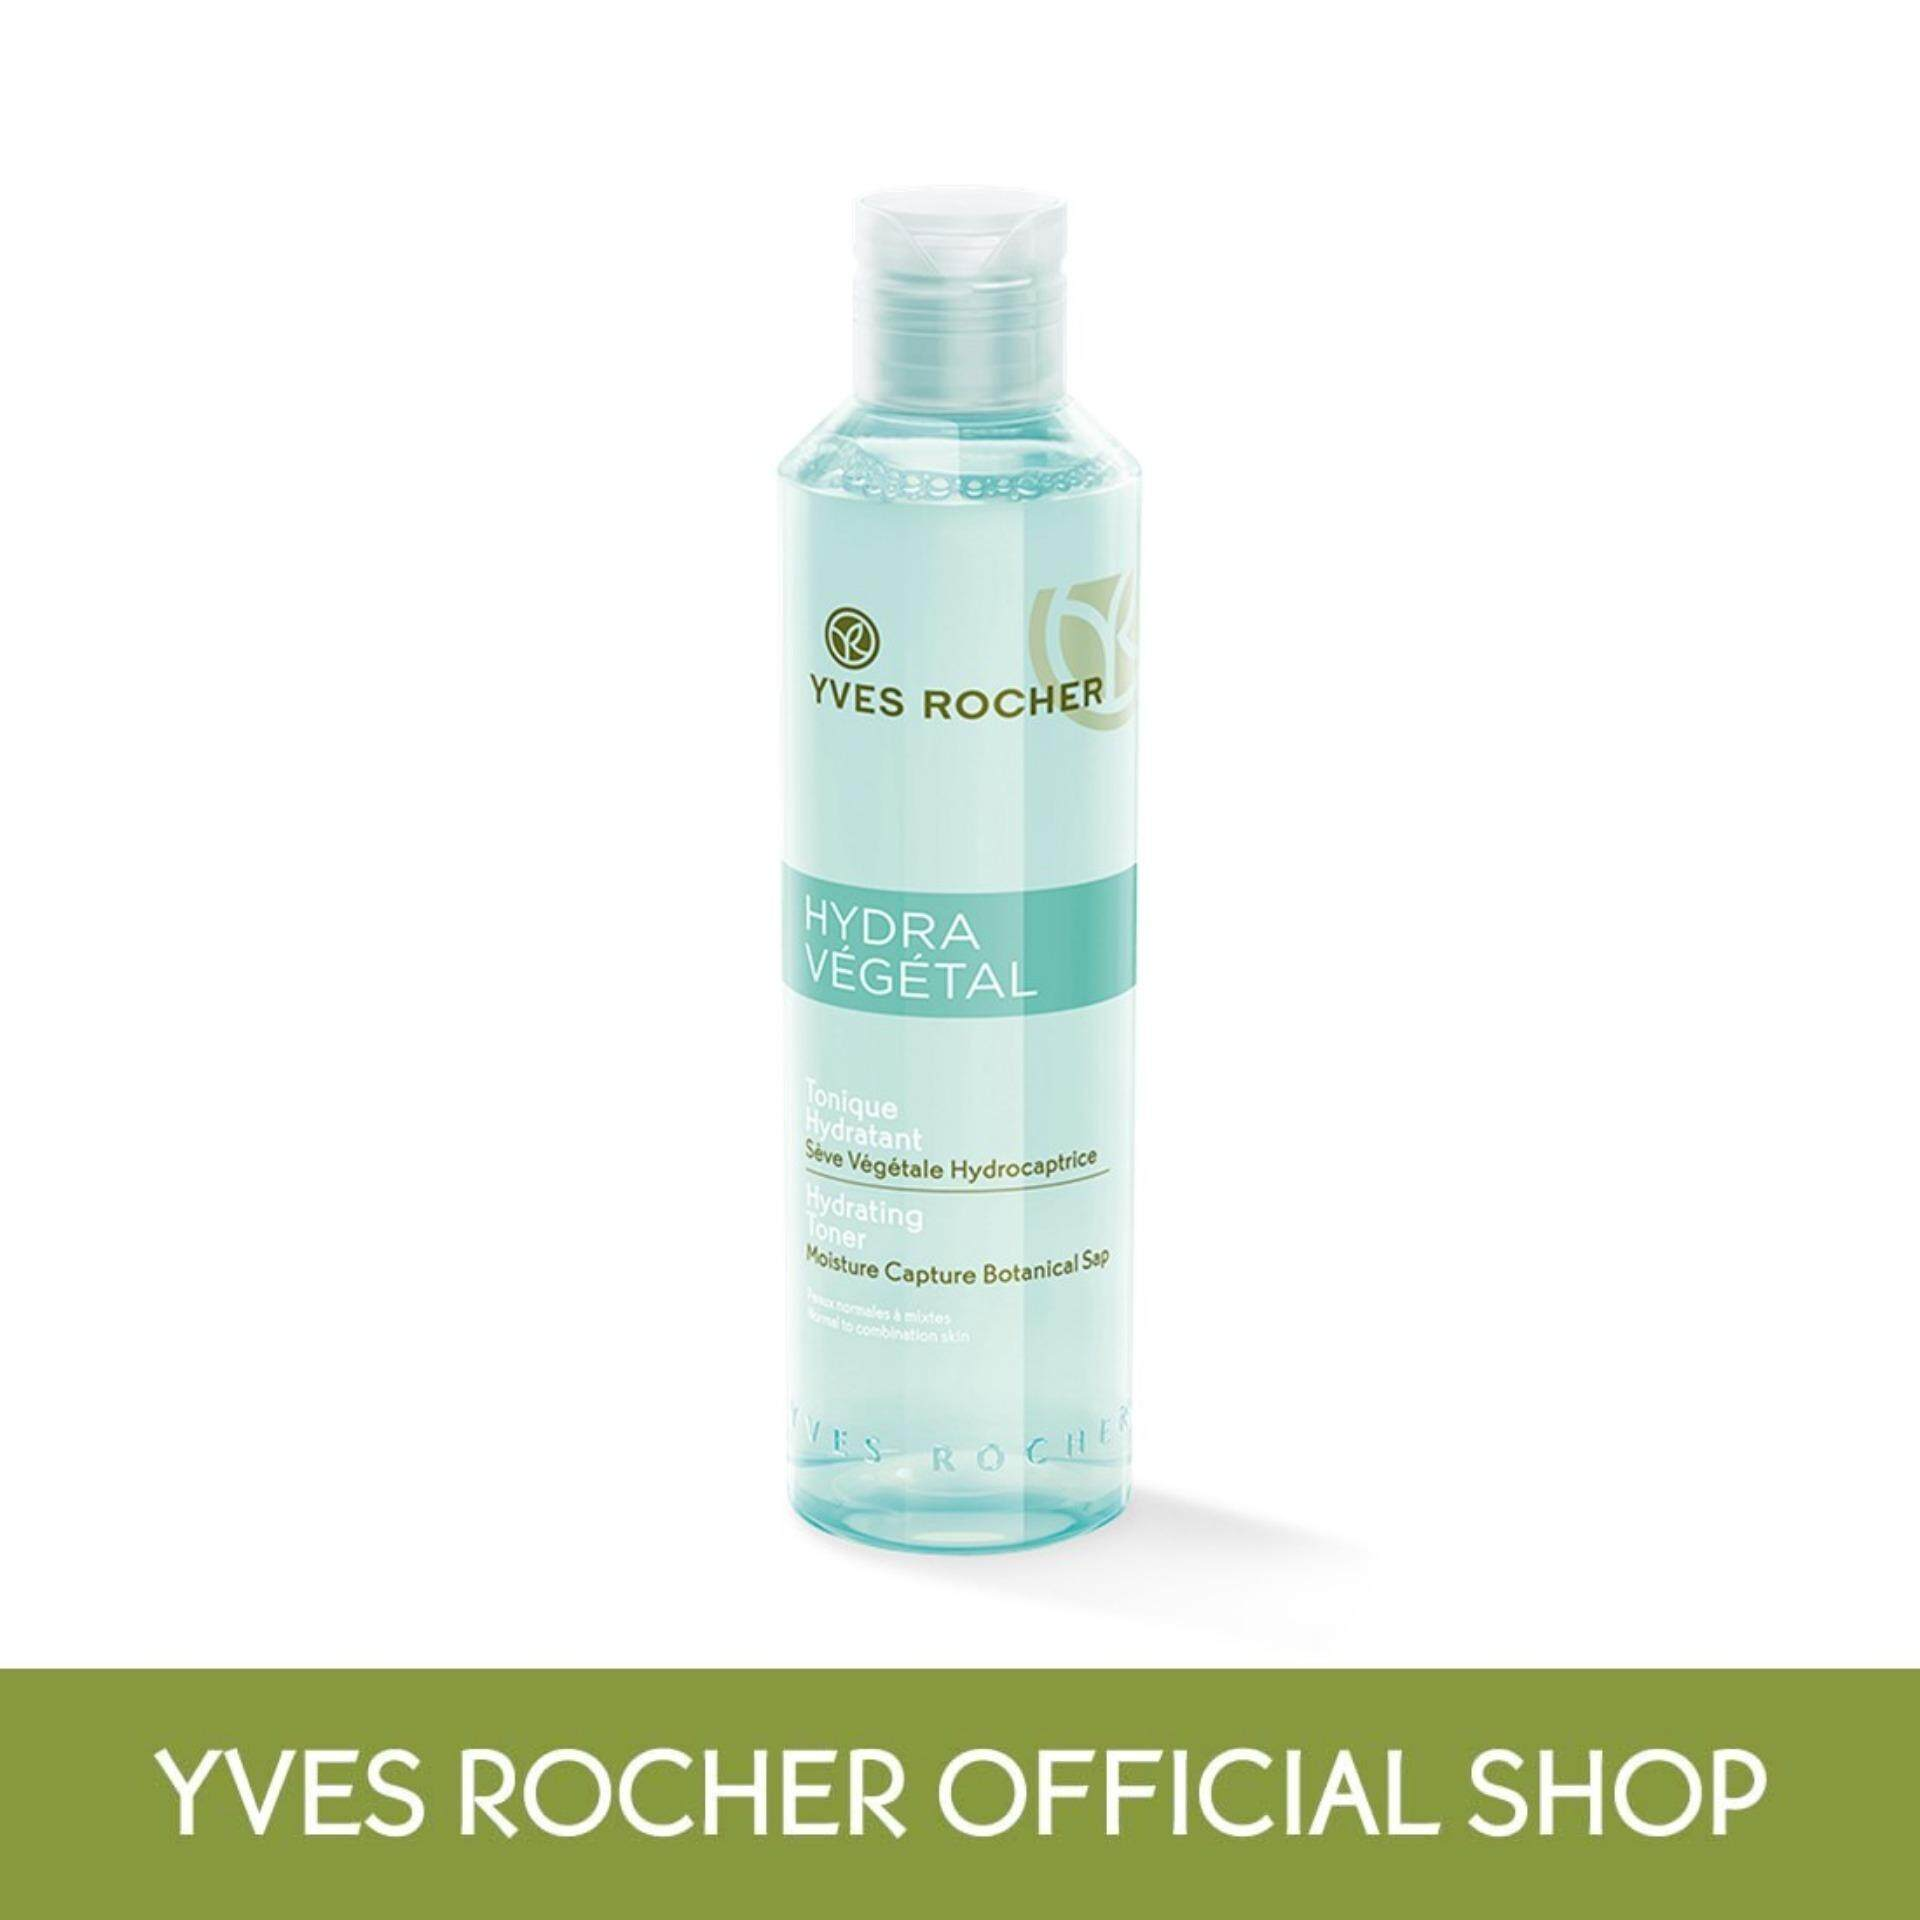 Yves Rocher Hydra Vegetal Hydrating Toner 200ml Malaysia 150ml